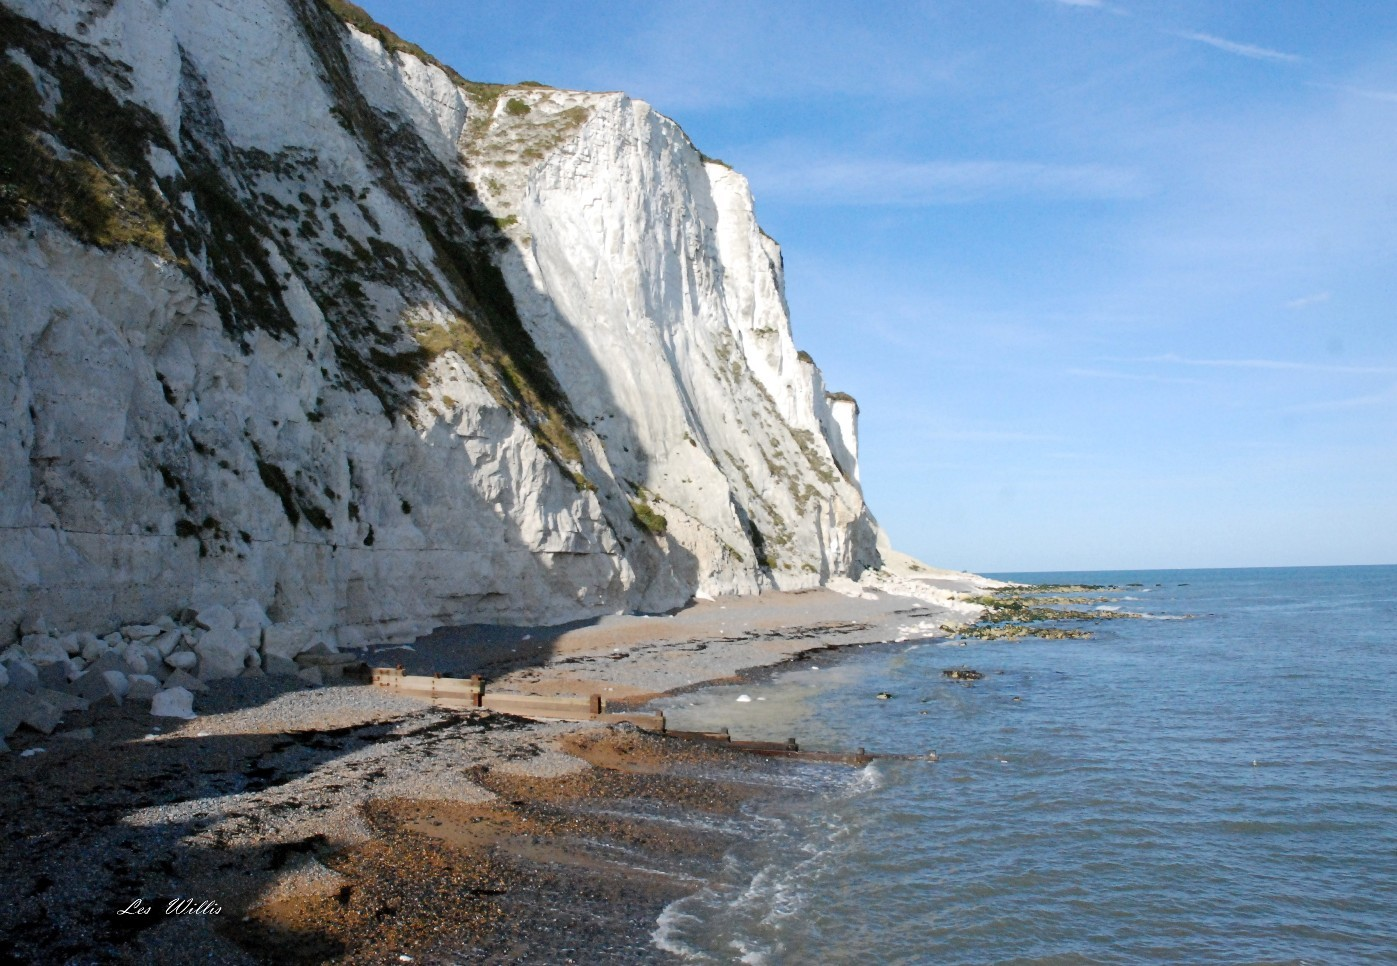 http://unusualplaces.aggress.ru/wp-content/uploads/2011/07/1299914749_6411964_white_cliffs_of_dover_big.jpg